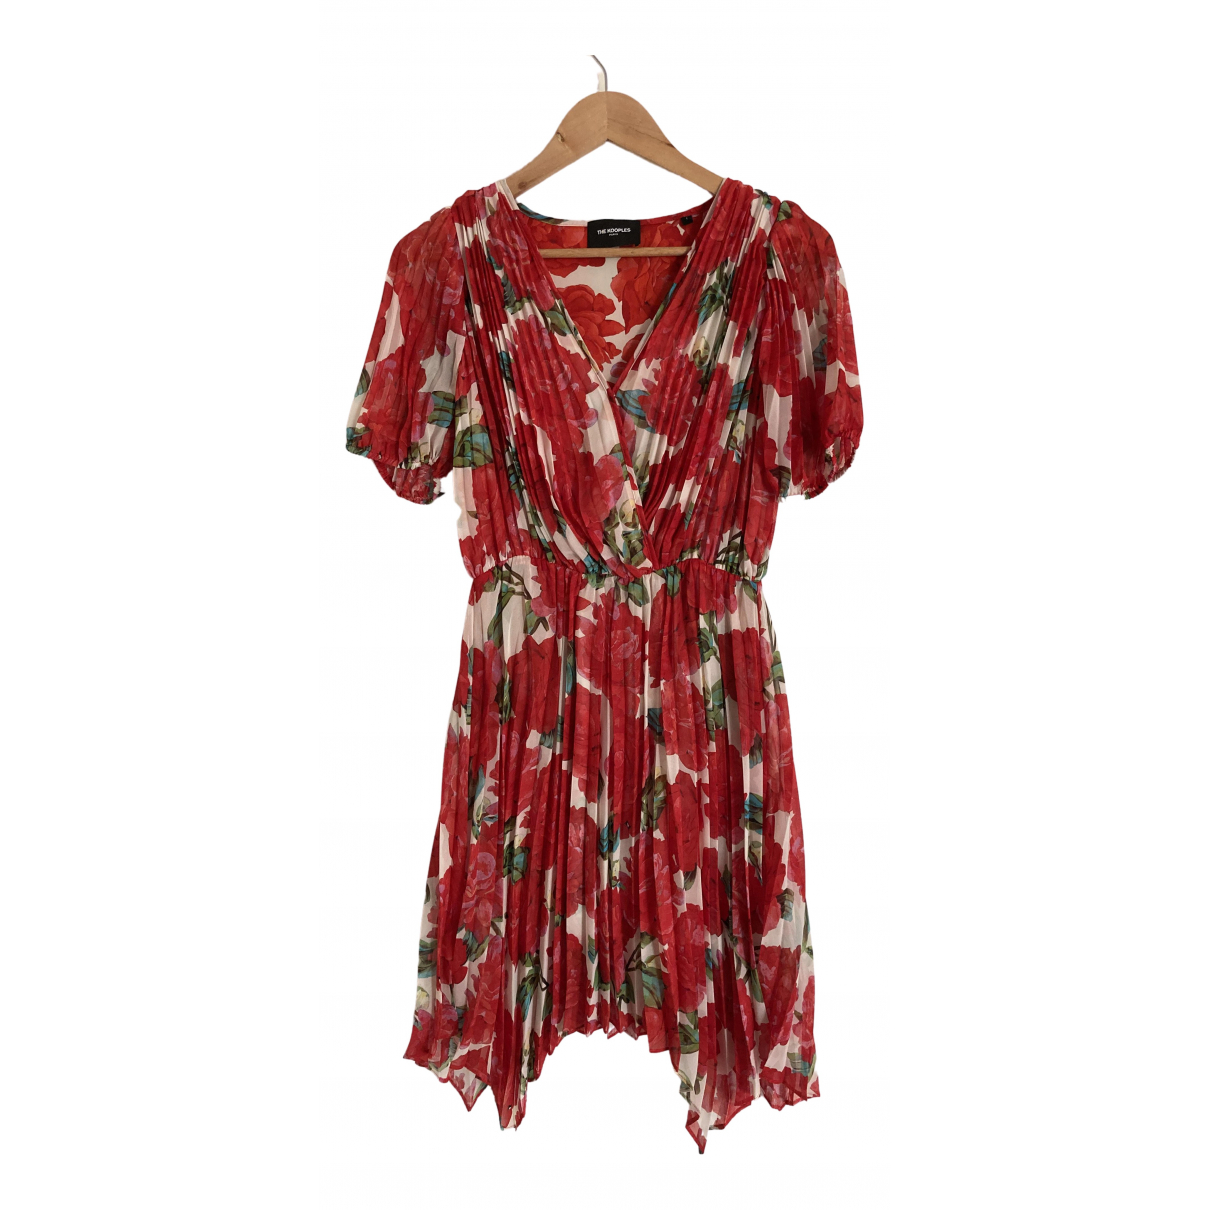 The Kooples Spring Summer 2020 Red dress for Women 36 FR